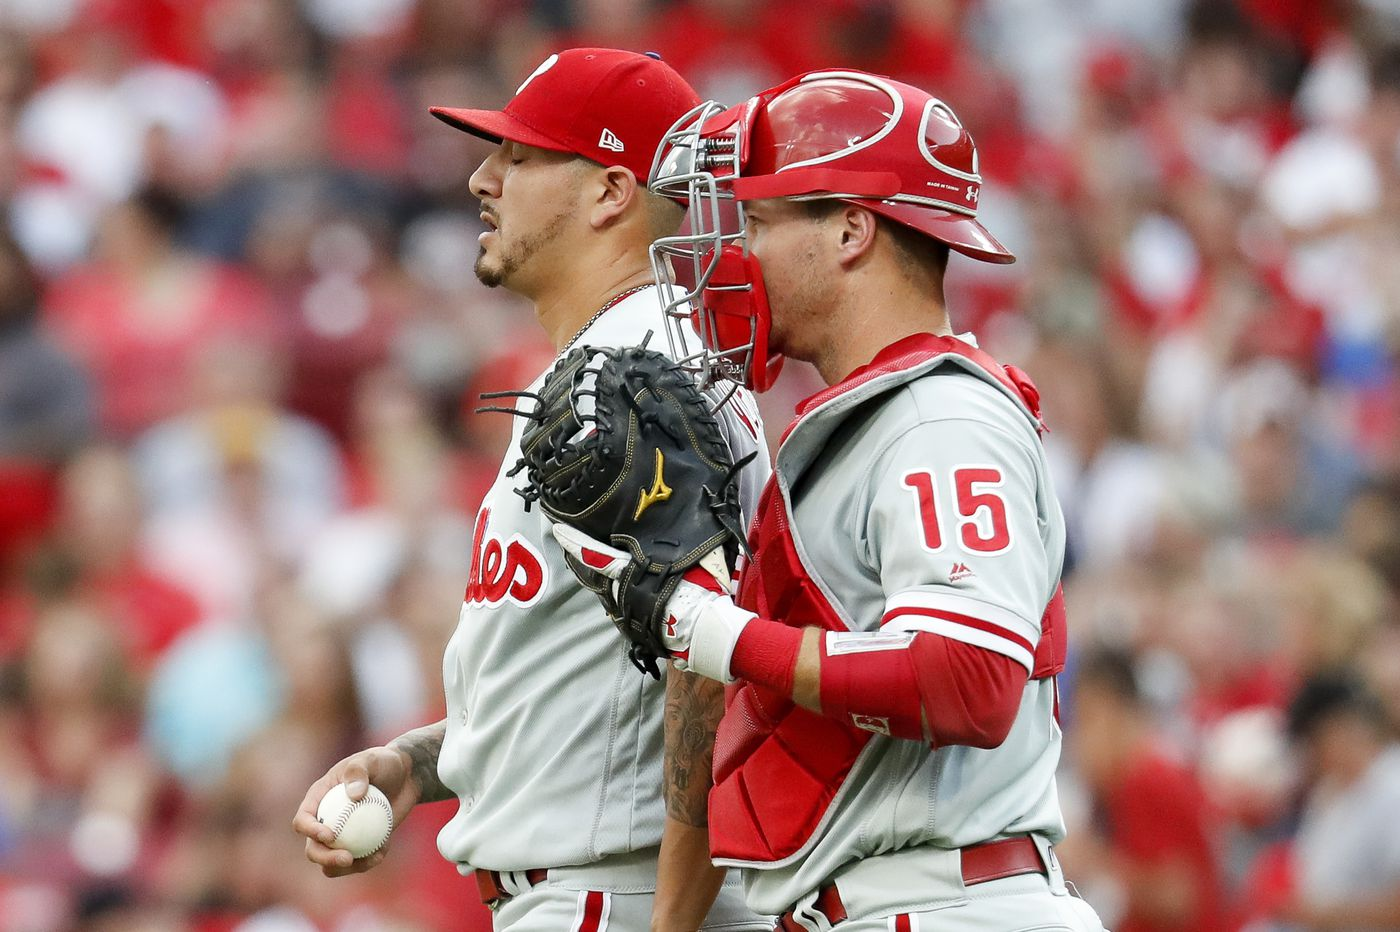 Phillies lose to Reds in Asdrubal Cabrera's quiet debut